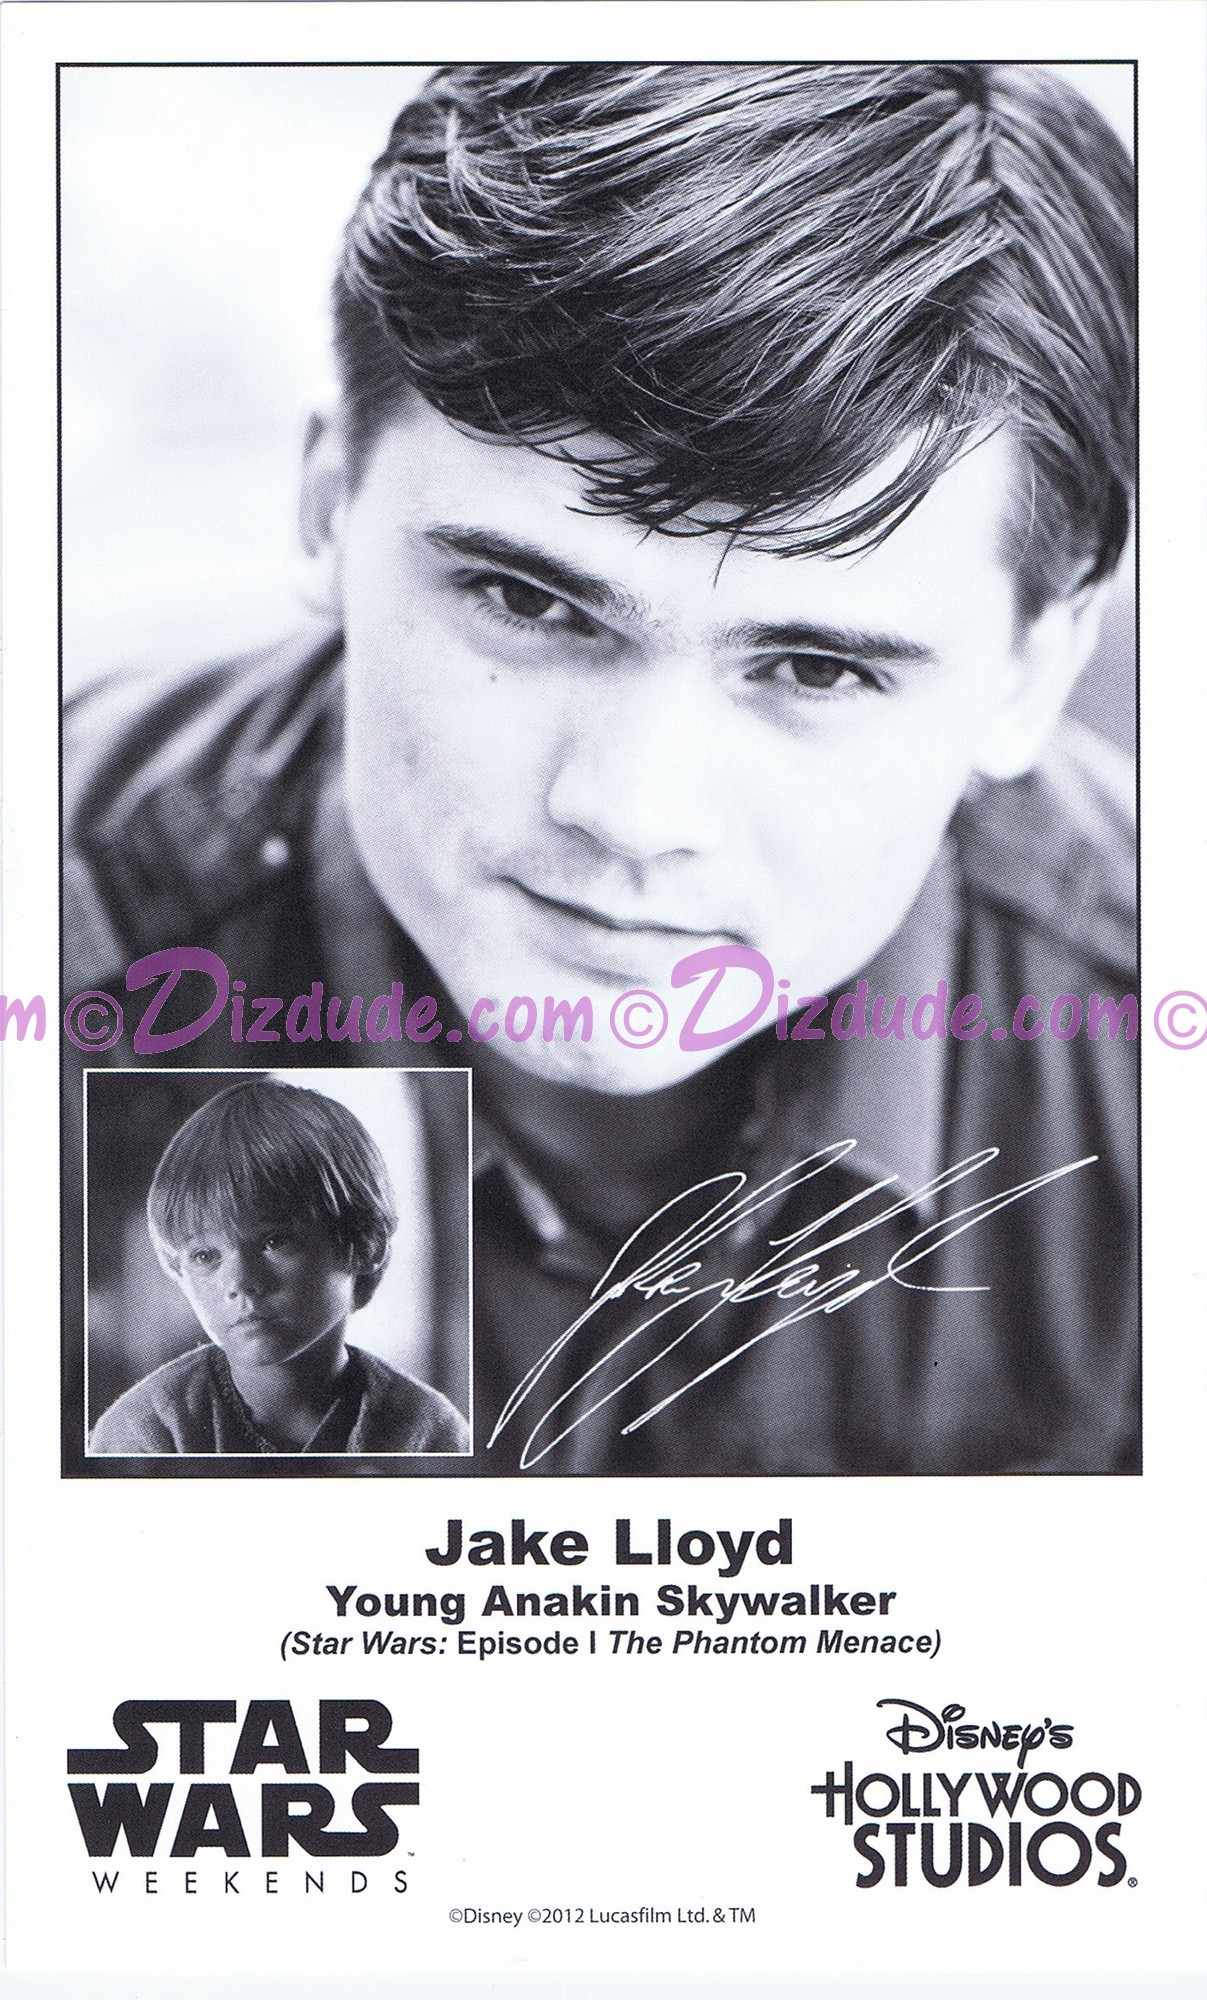 Jake Lloyd who played Young Anakin Skywalker Presigned Official Star Wars Weekends 2012 Celebrity Collector Photo © Dizdude.com